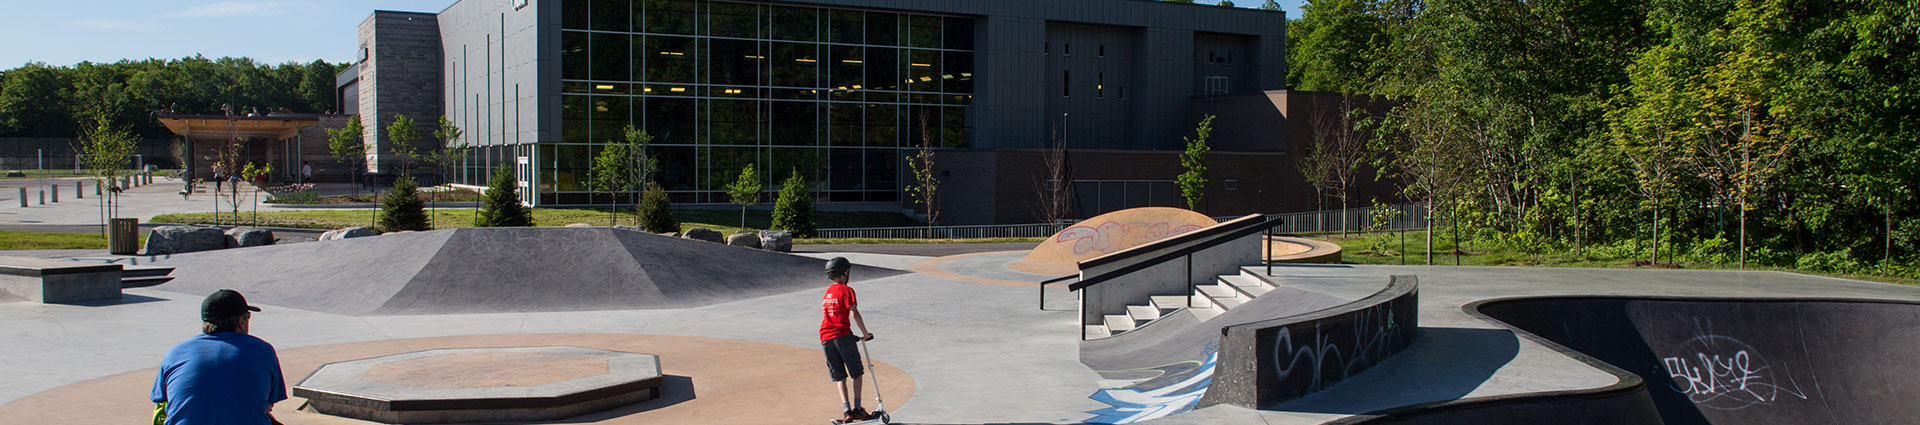 Richcraft Recreational skate park